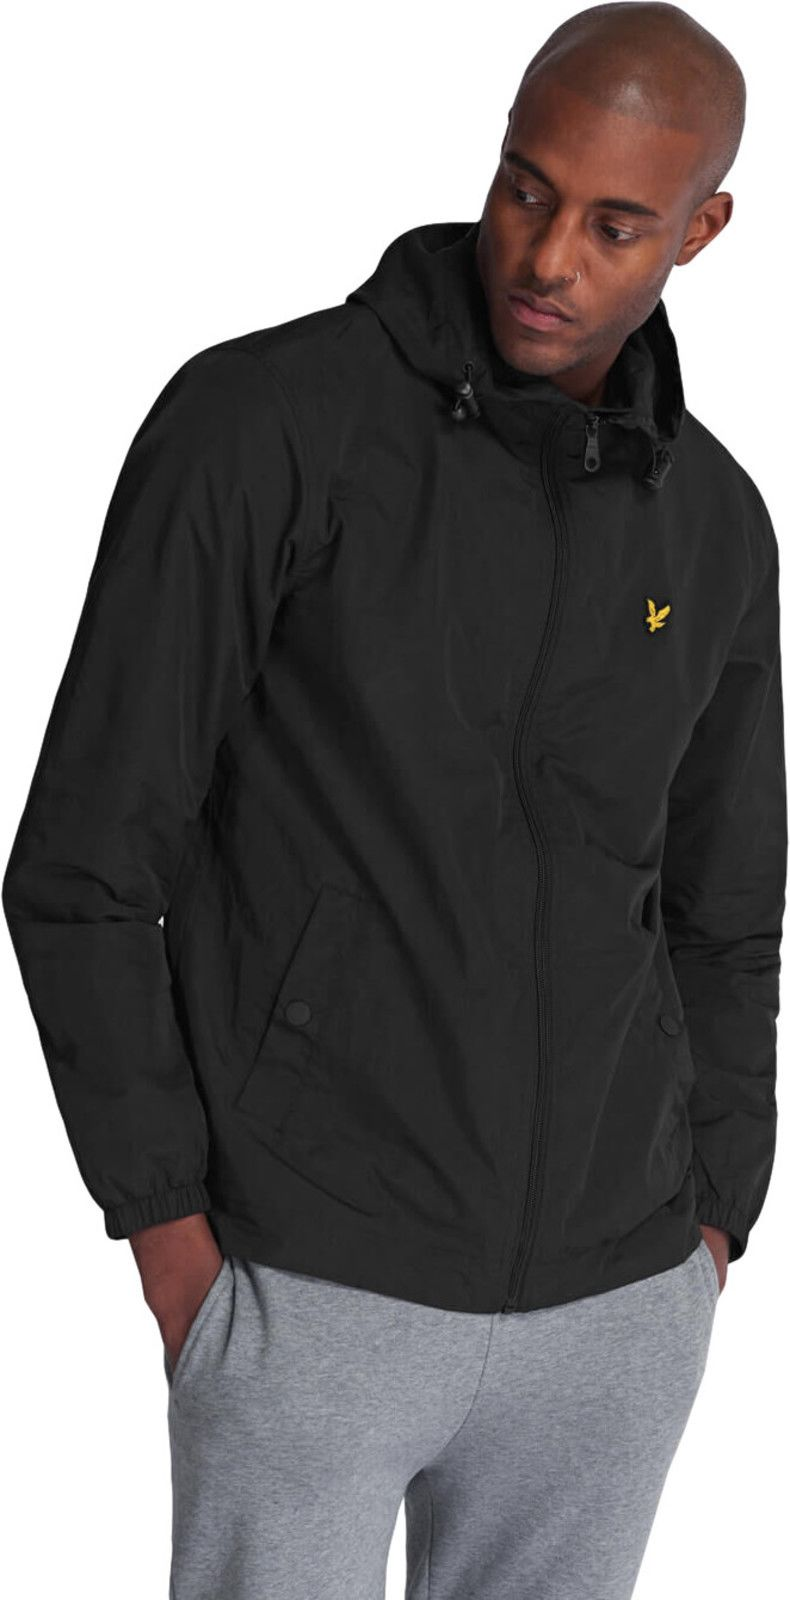 Lyle & Scott Zip Front Lightweight Hooded Jacket Black